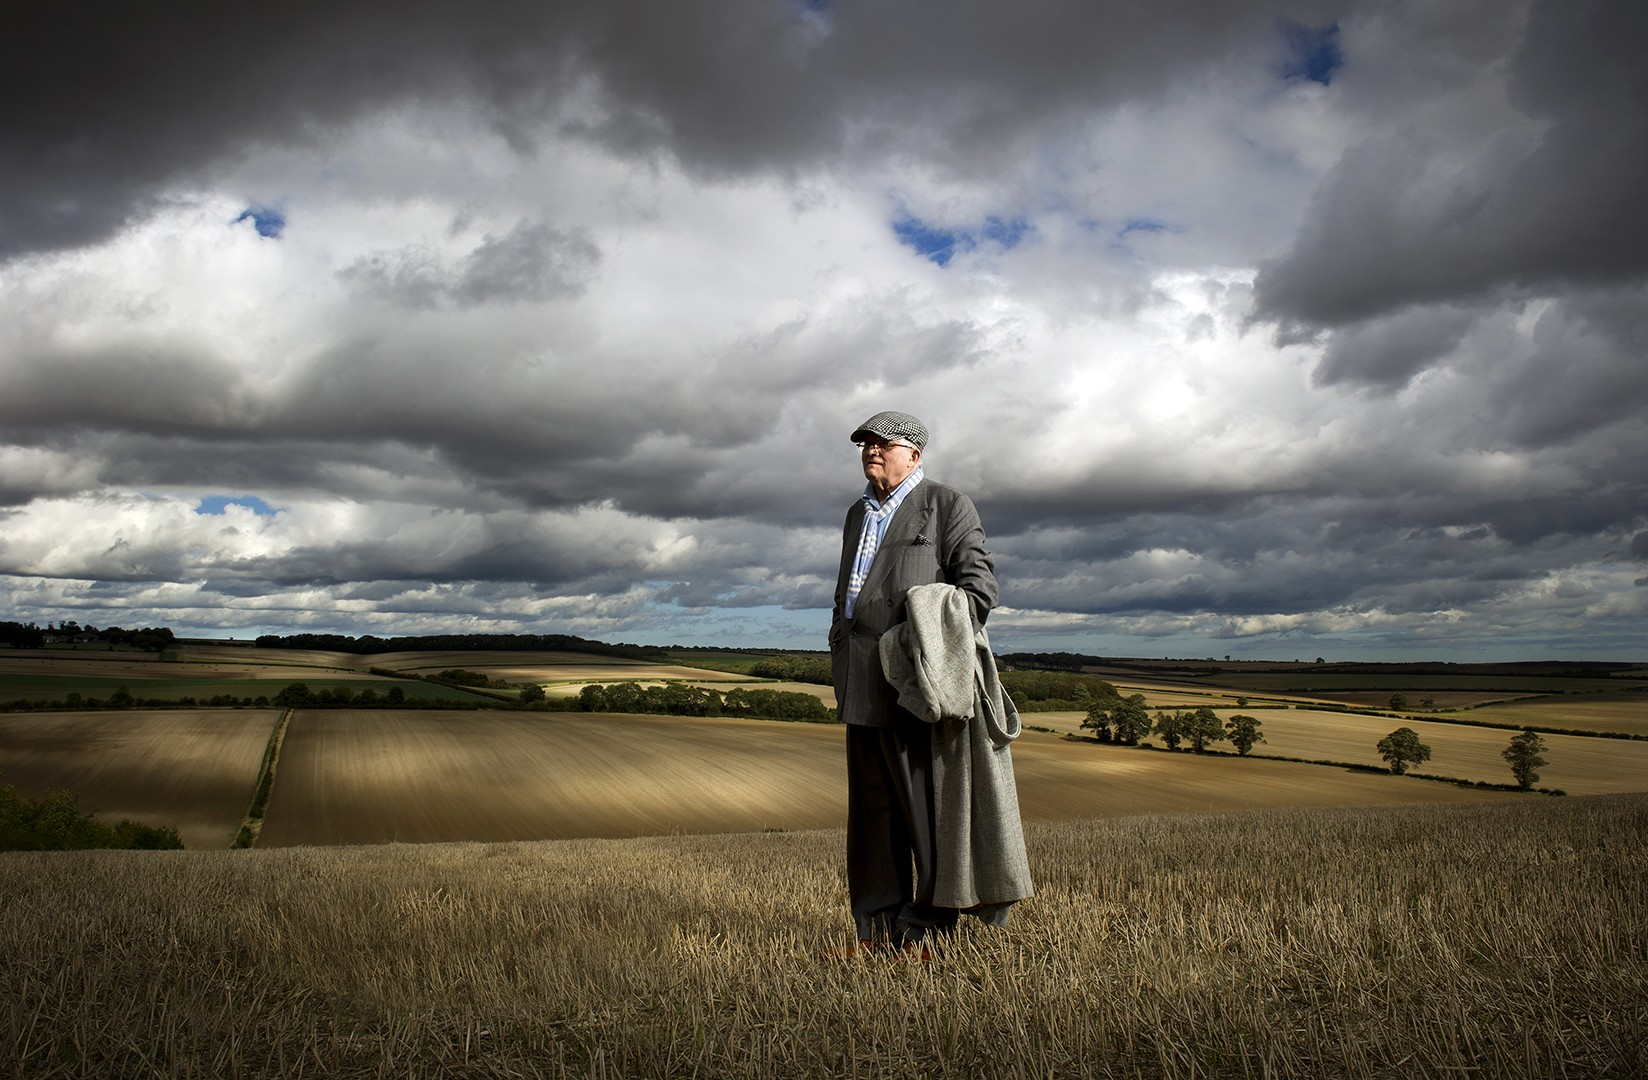 JohnnyMillar_Photography_Portrait_David Hockney North Yorkshire Autumn 2011